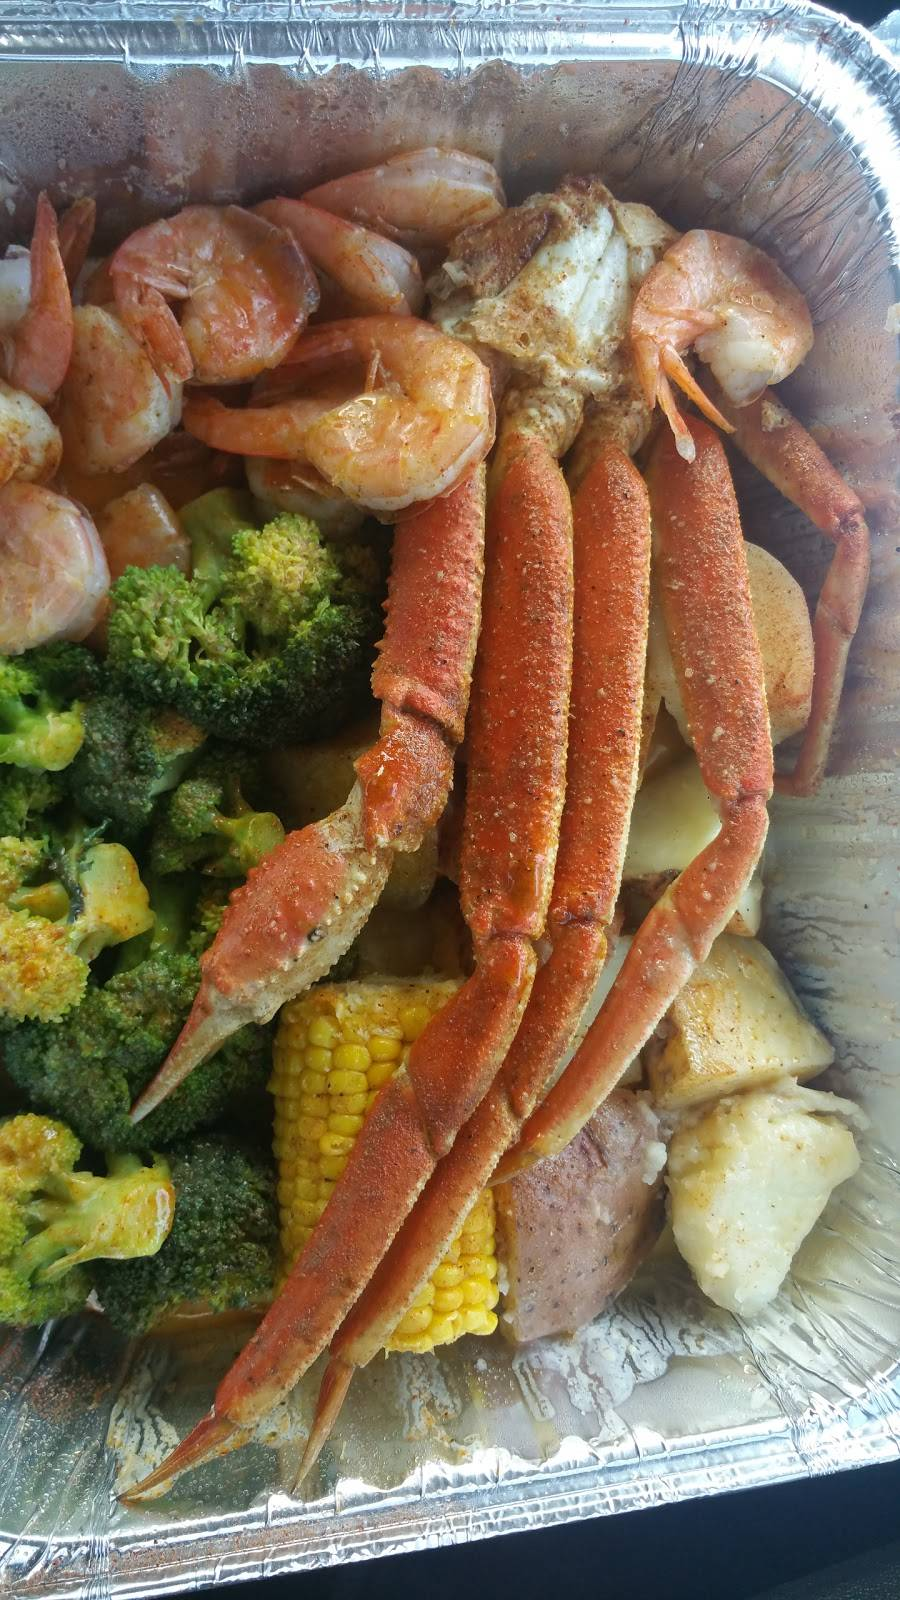 Fishermans Island   restaurant   4142 167th St, Country Club Hills, IL 60478, USA   7085664667 OR +1 708-566-4667